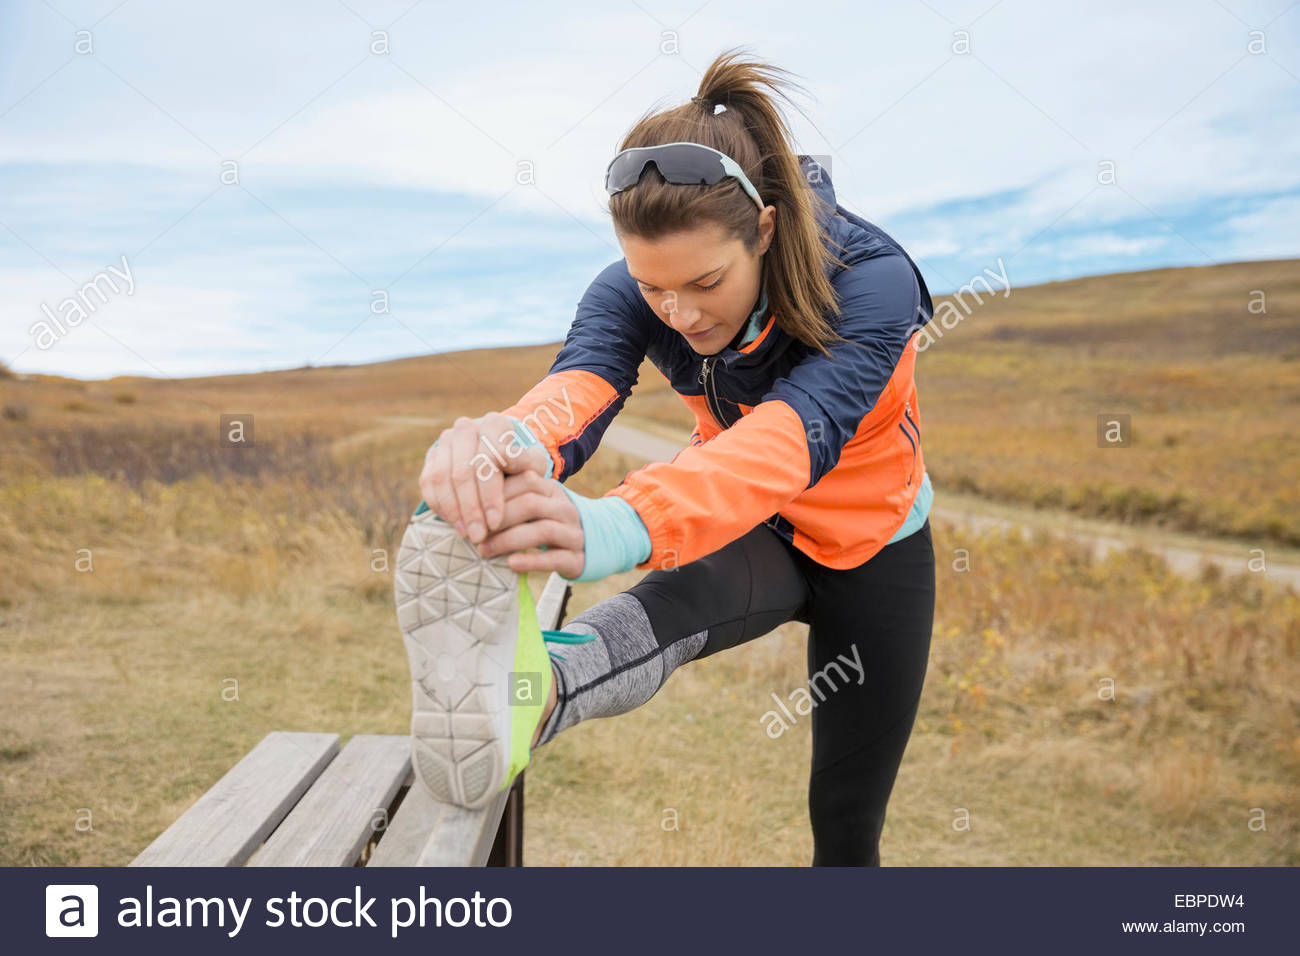 Runner stretching leg on rural bench - Stock Image